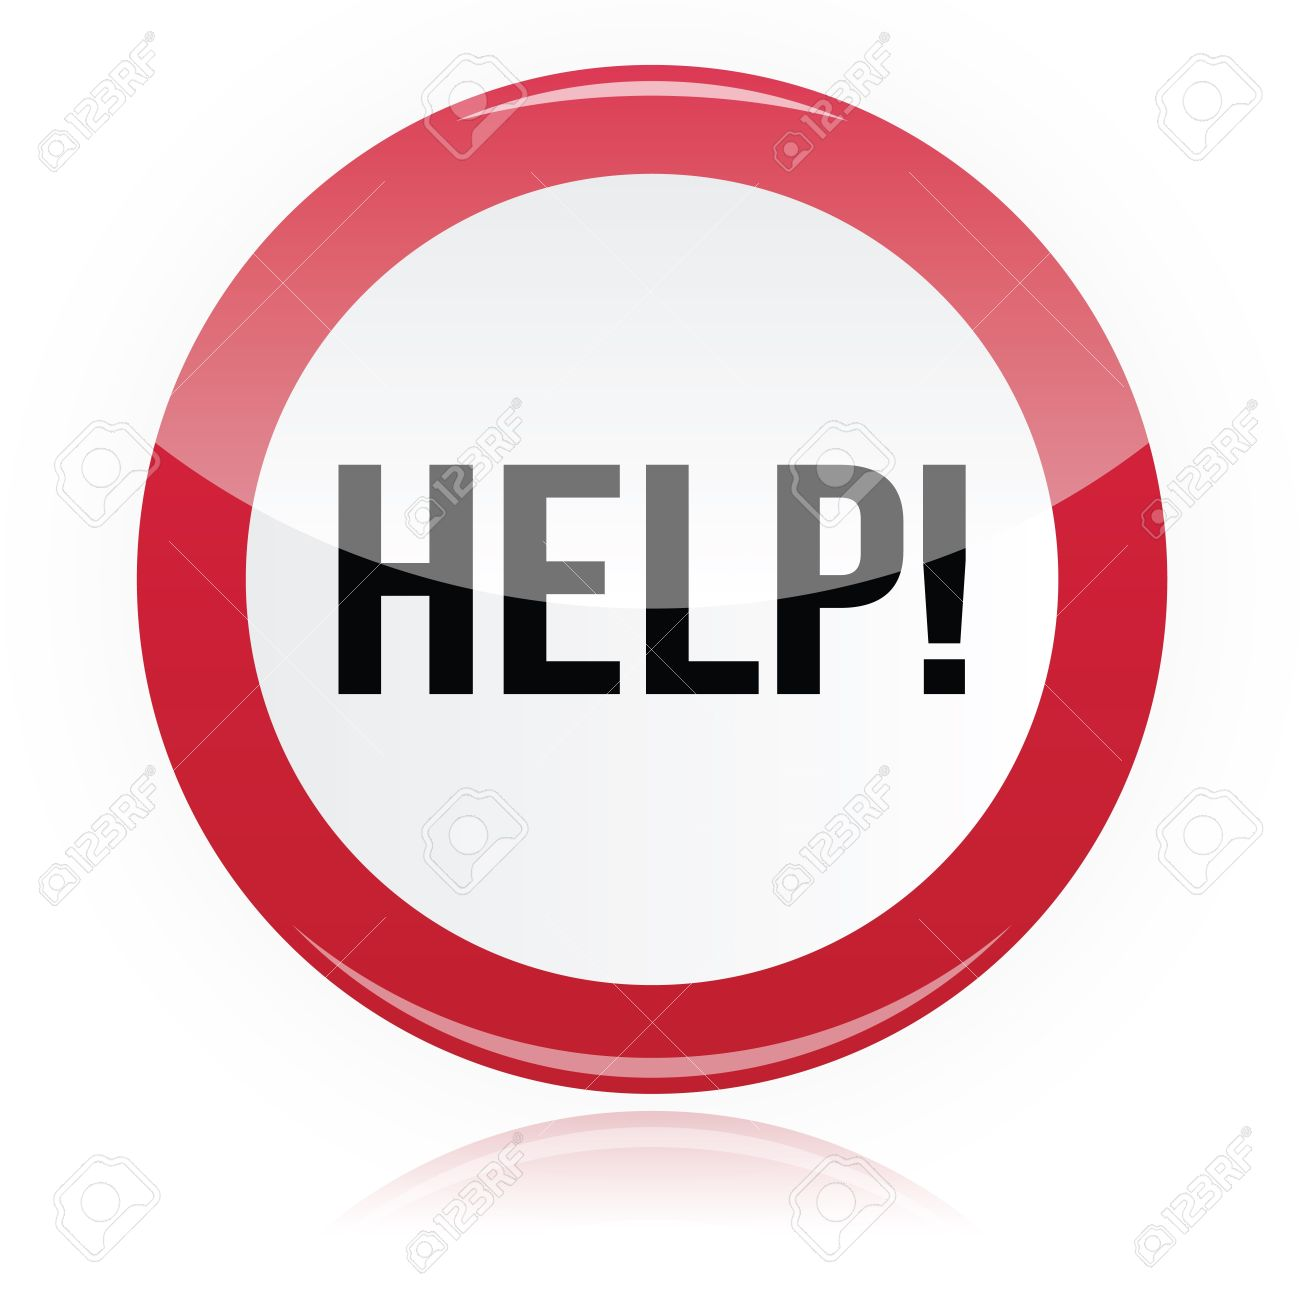 help problem glossy red sign royalty free cliparts vectors and